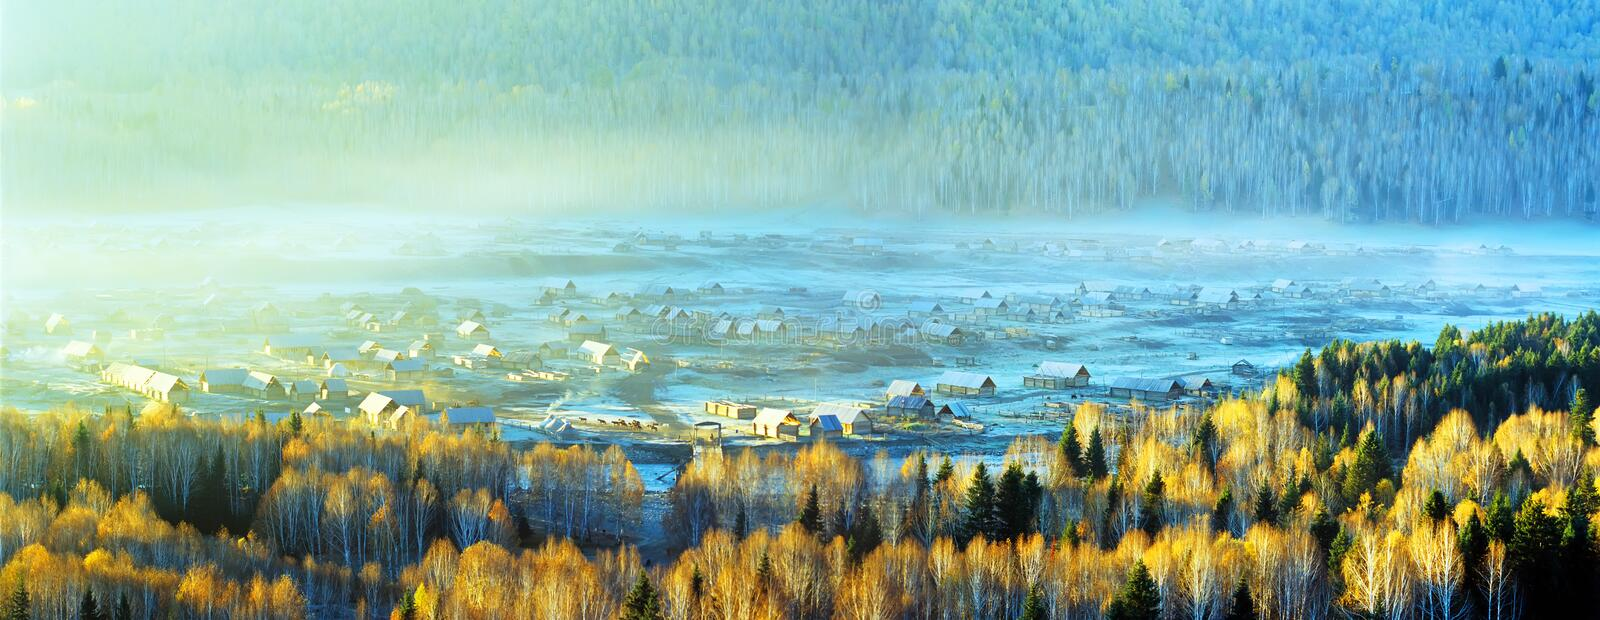 Village in the valley royalty free stock image